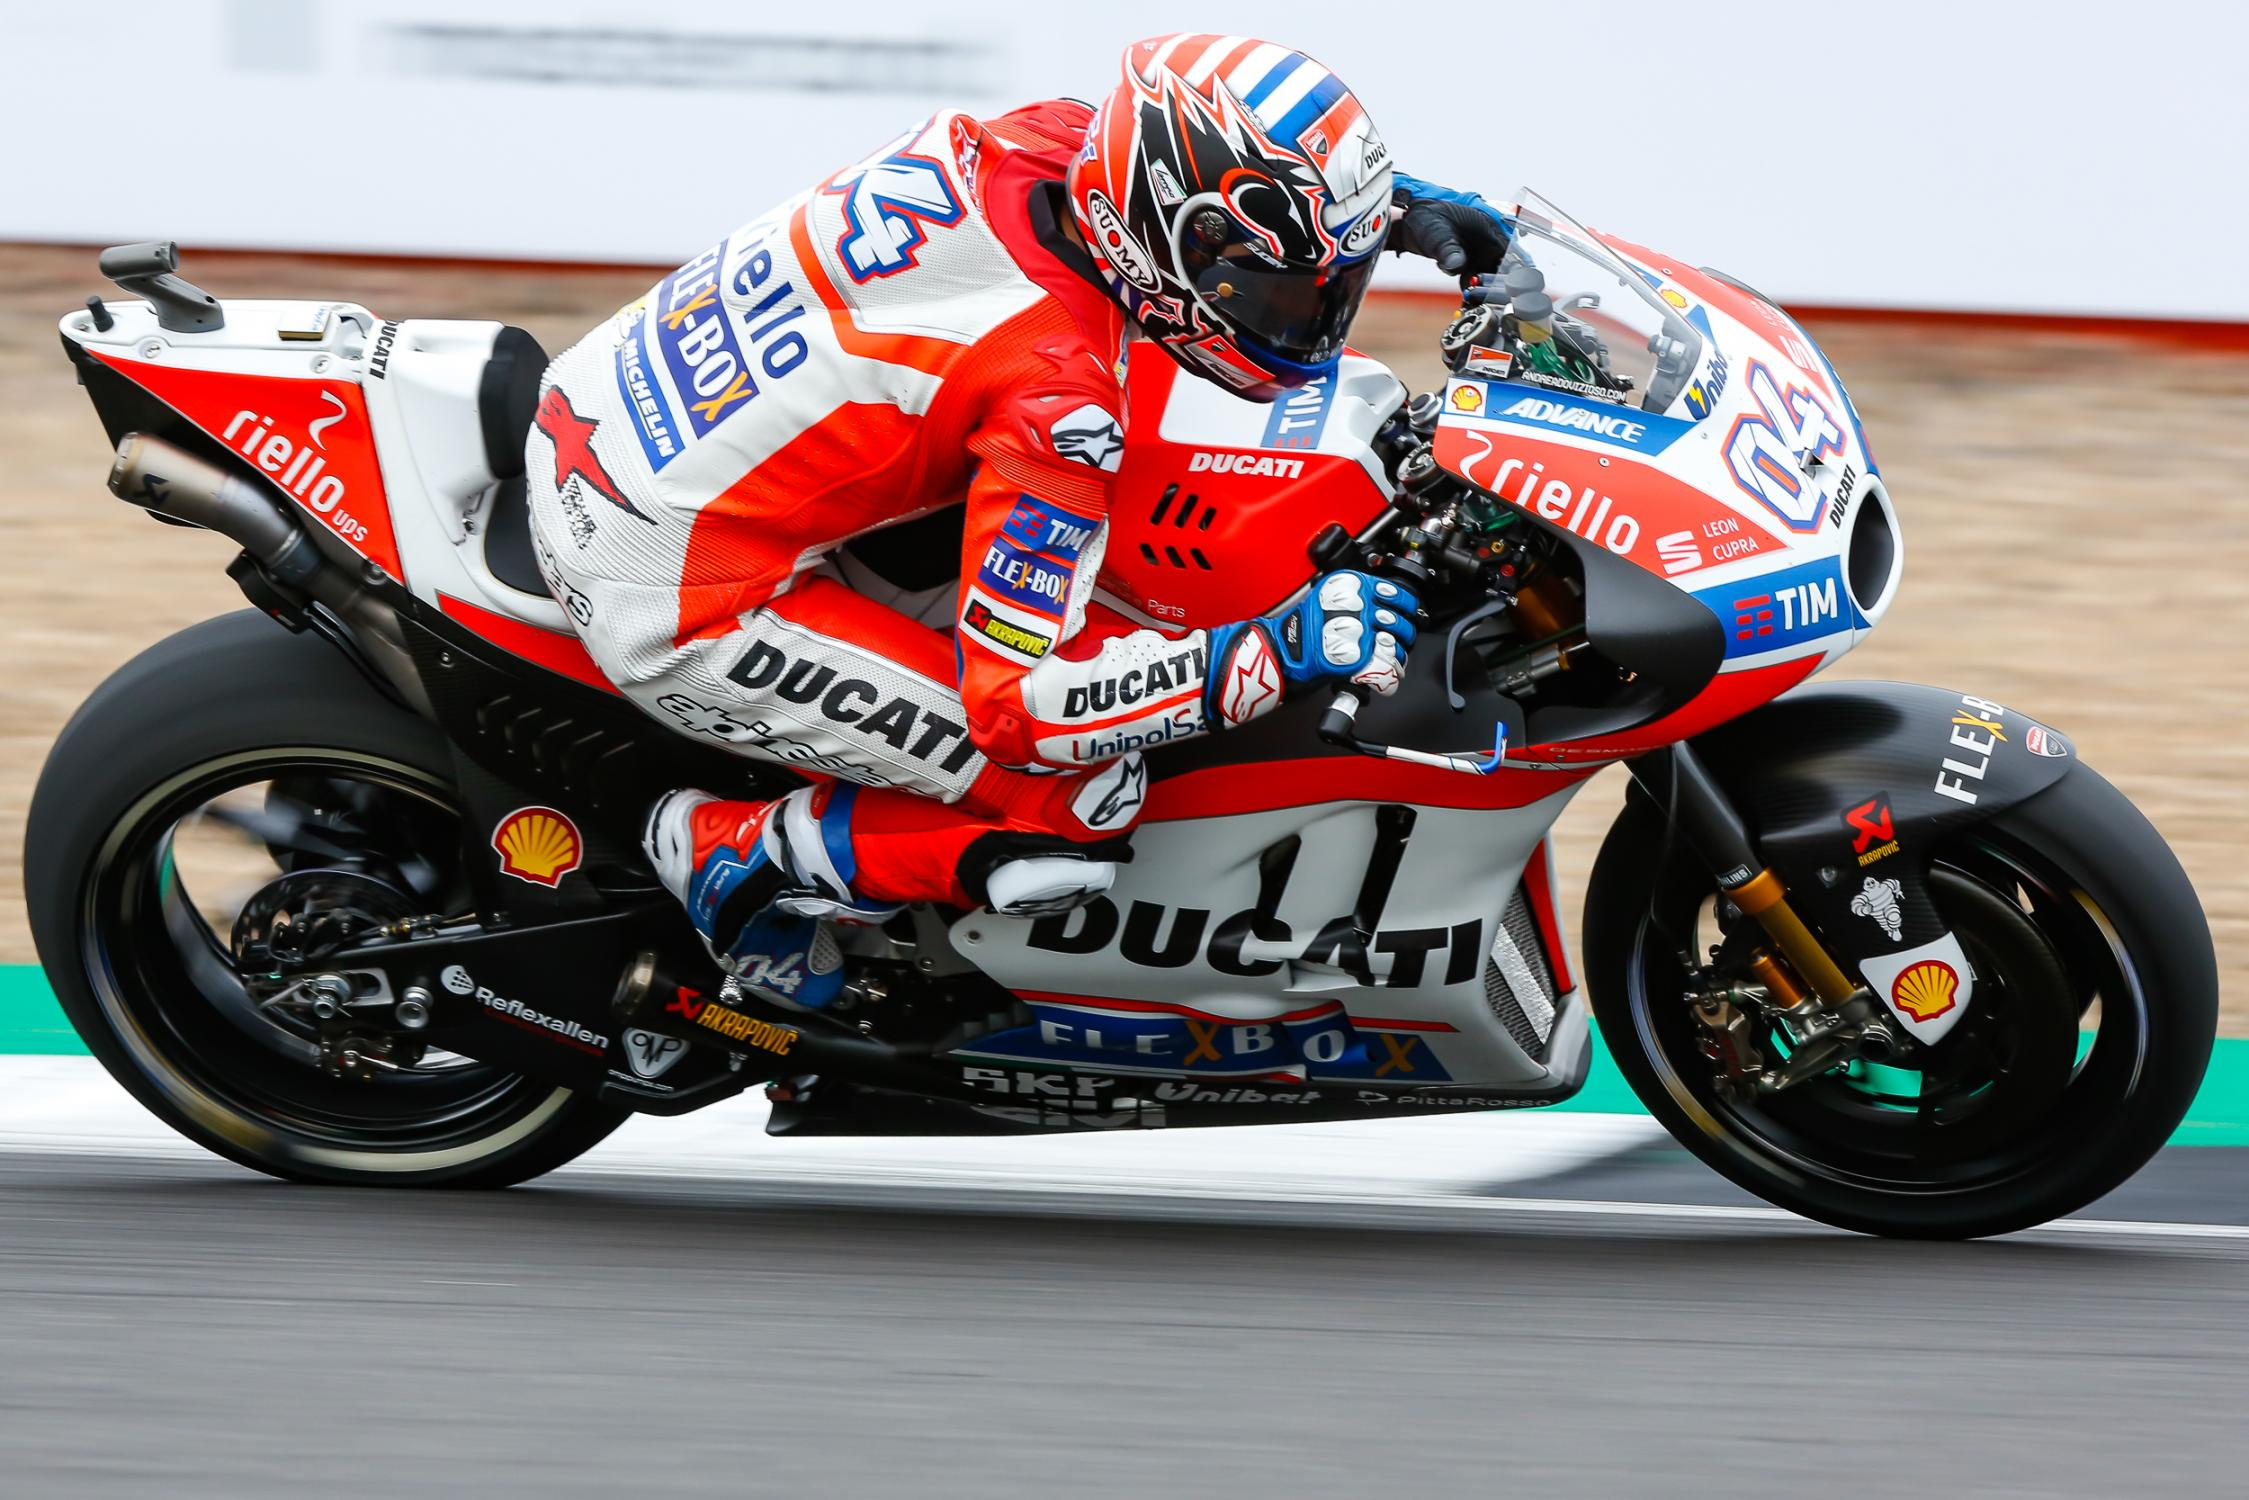 04-andrea-dovizioso-ita_gp_5963.gallery_full_top_fullscreen.jpg